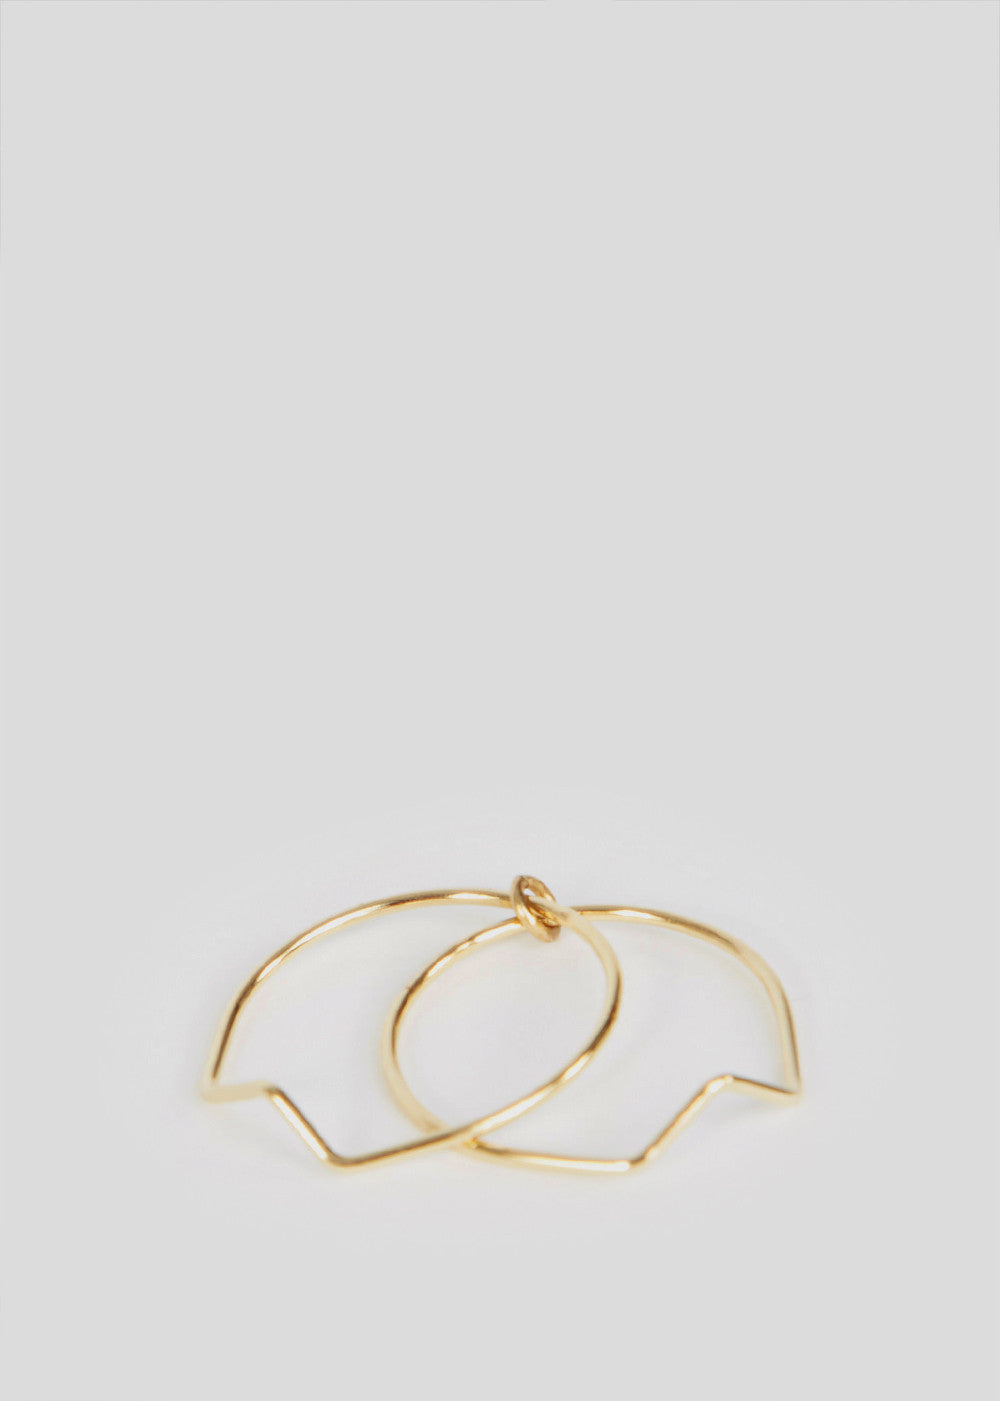 Arrow Ring 3 Gold Trois Petits Points Womens Jewellery Ring- someplace